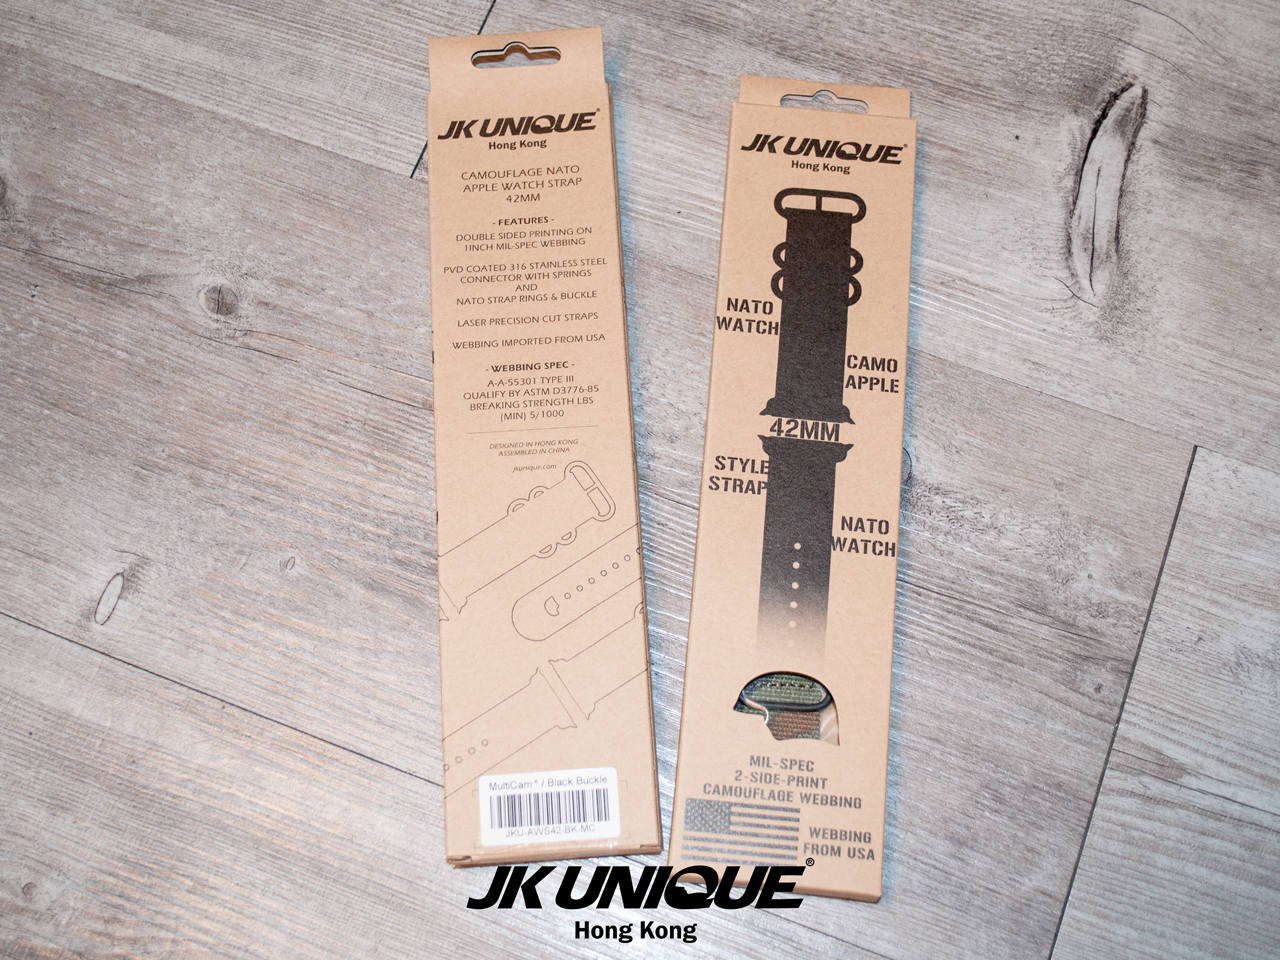 JK-UNIQUE-CAMO-NATO-Style-Apple-Watch-Strap-42mm-37-(1280).jpg